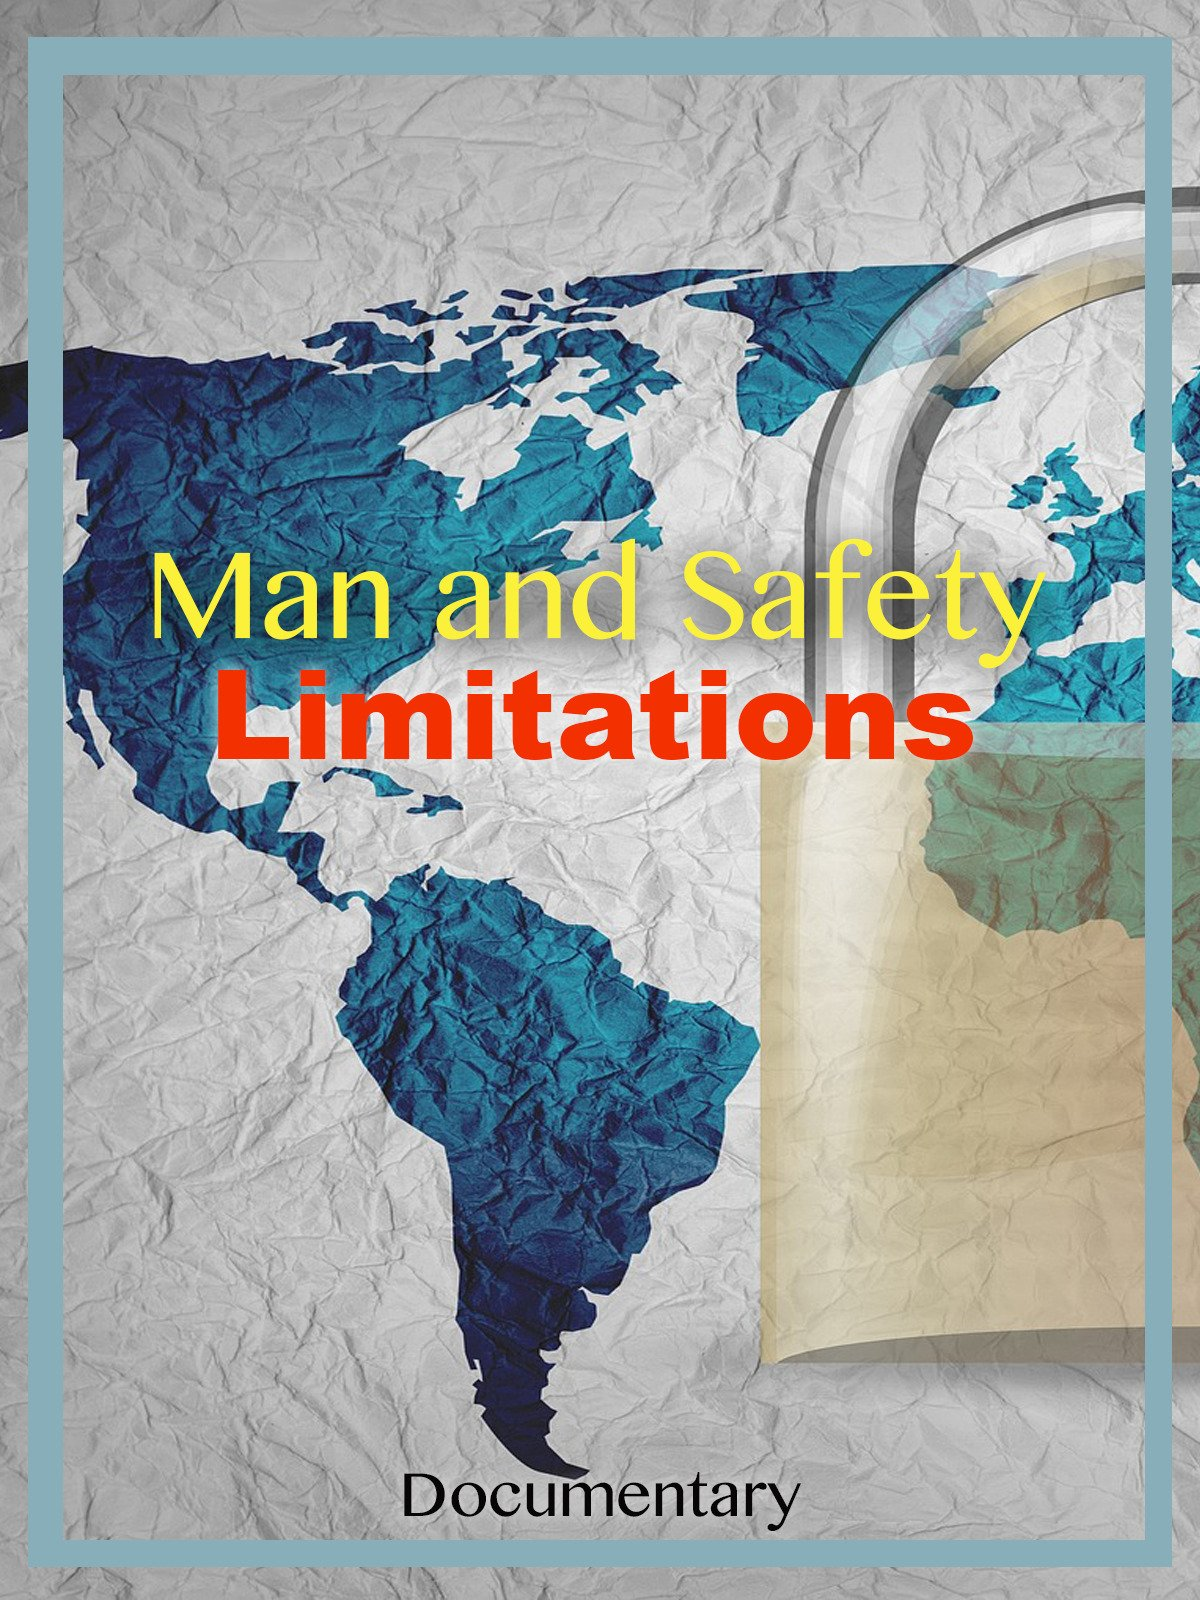 Man and Safety Limitations Documentary